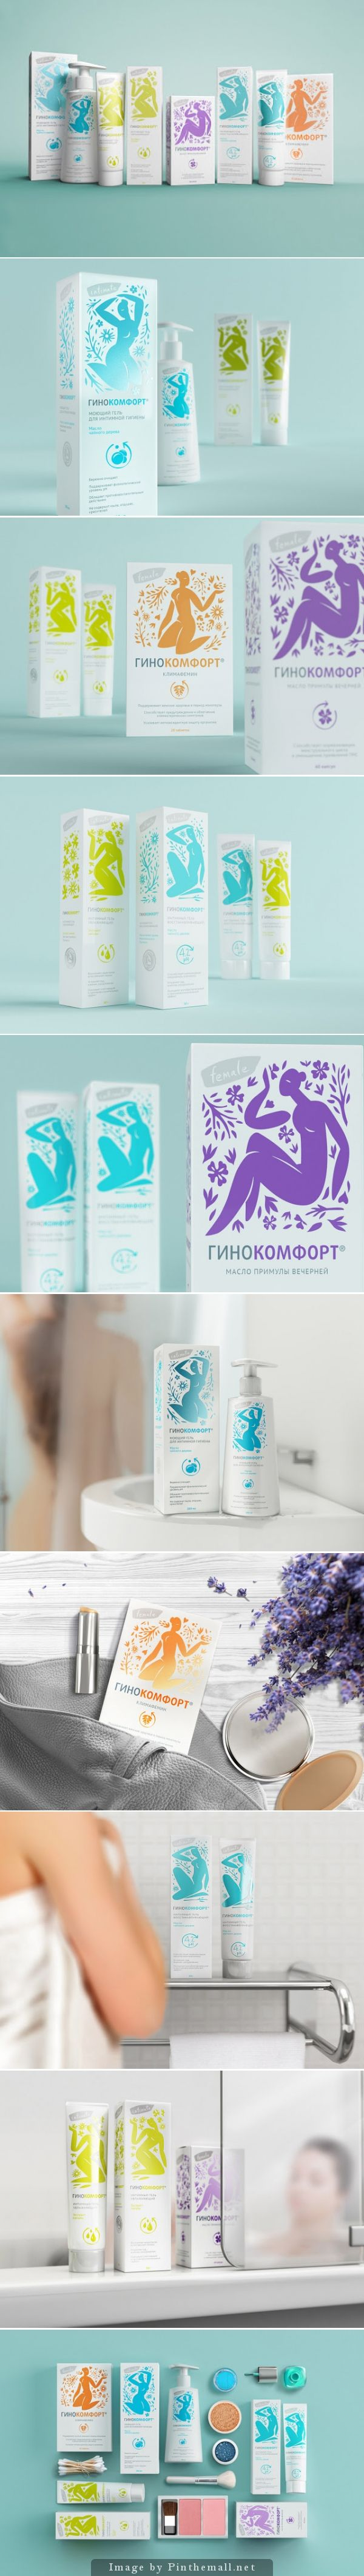 Ginocomfort #packaging by OTVETDESIGN - http://www.packagingoftheworld.com/2014/11/ginocomfort.html